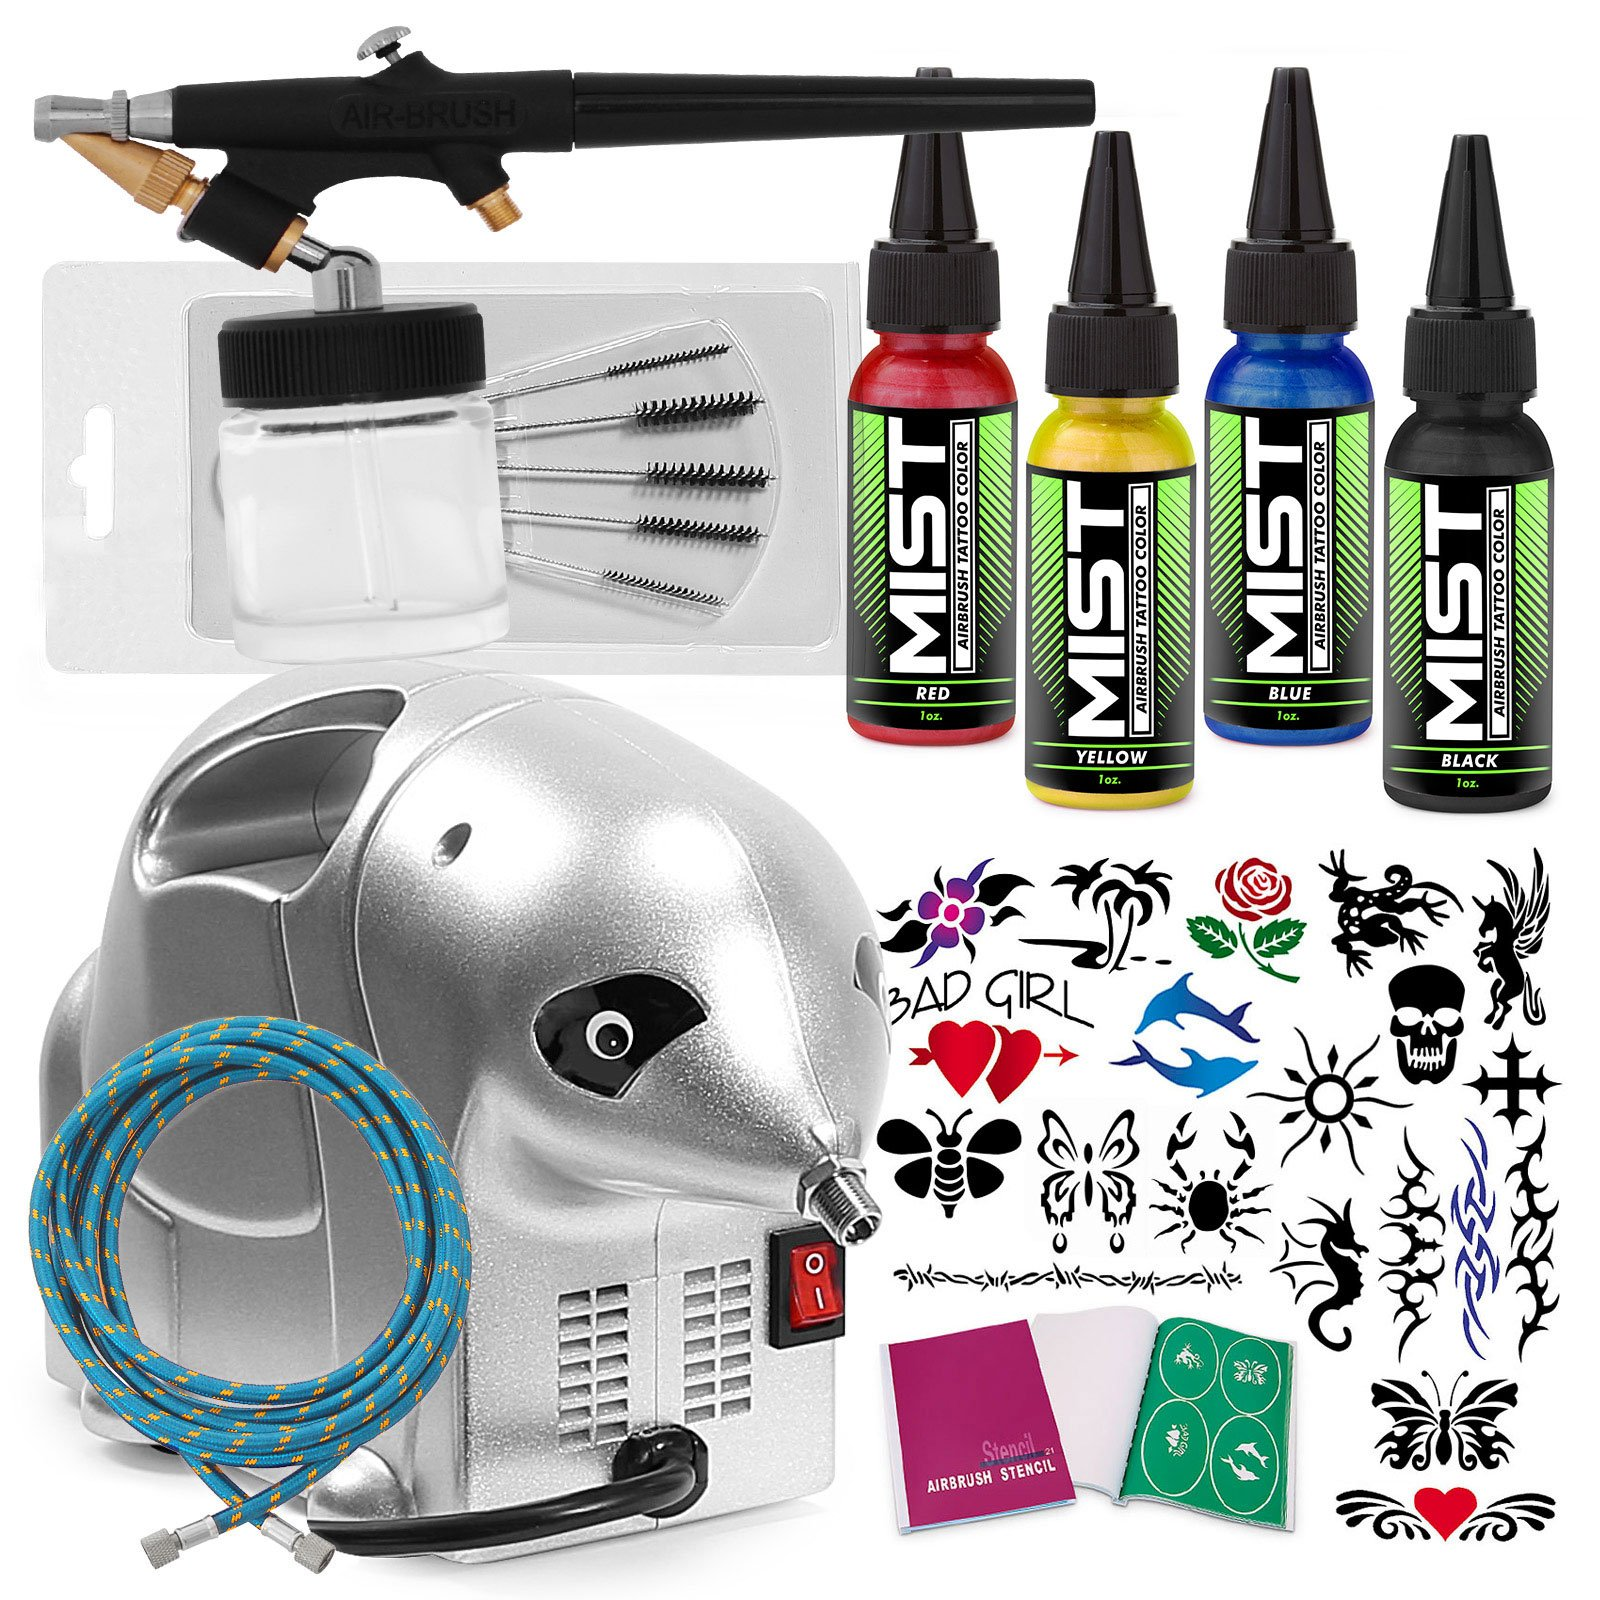 PointZero Complete Temporary Tattoo Airbrush Set - 4 Color 20 Stencil Kit by Point Zero